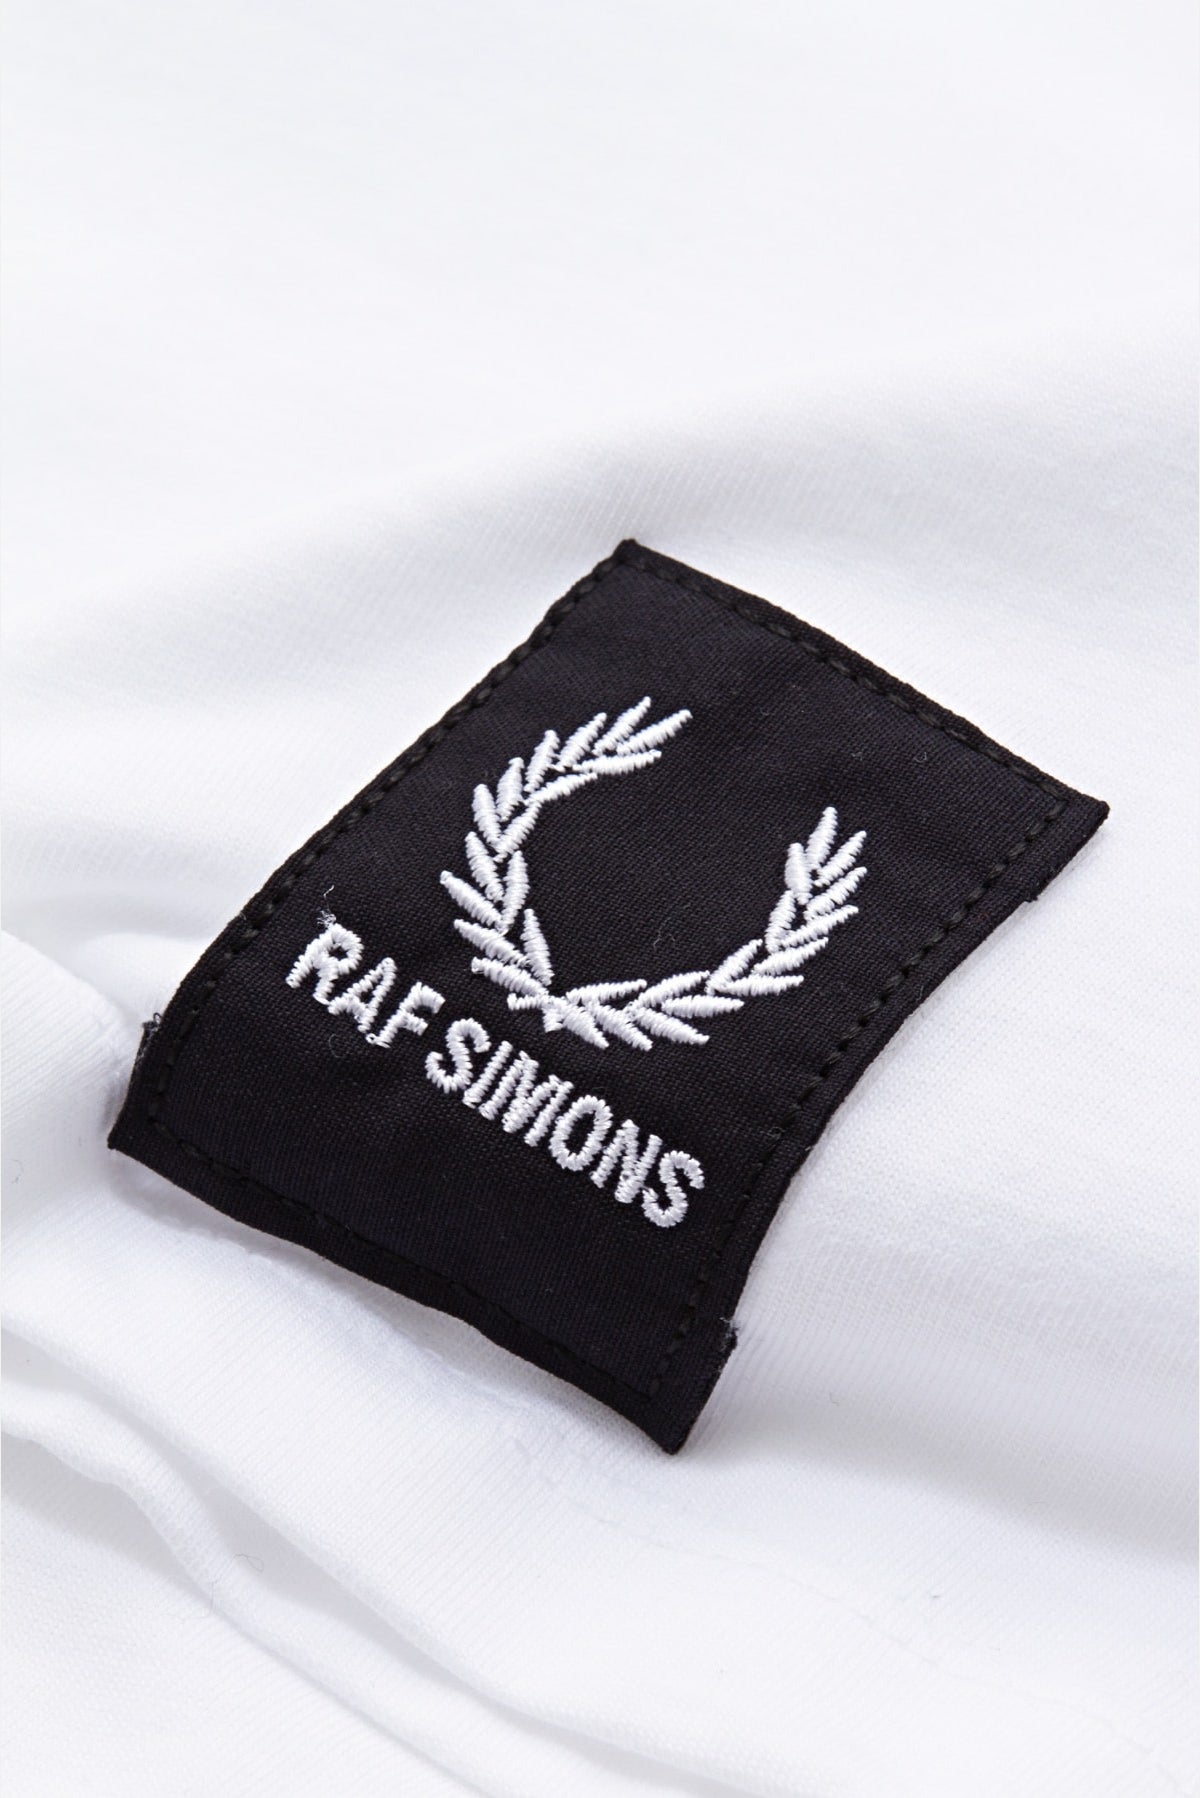 c38c0291f67 Fred Perry x RAF Simons Tape Detail L S T-Shirt available from Priory